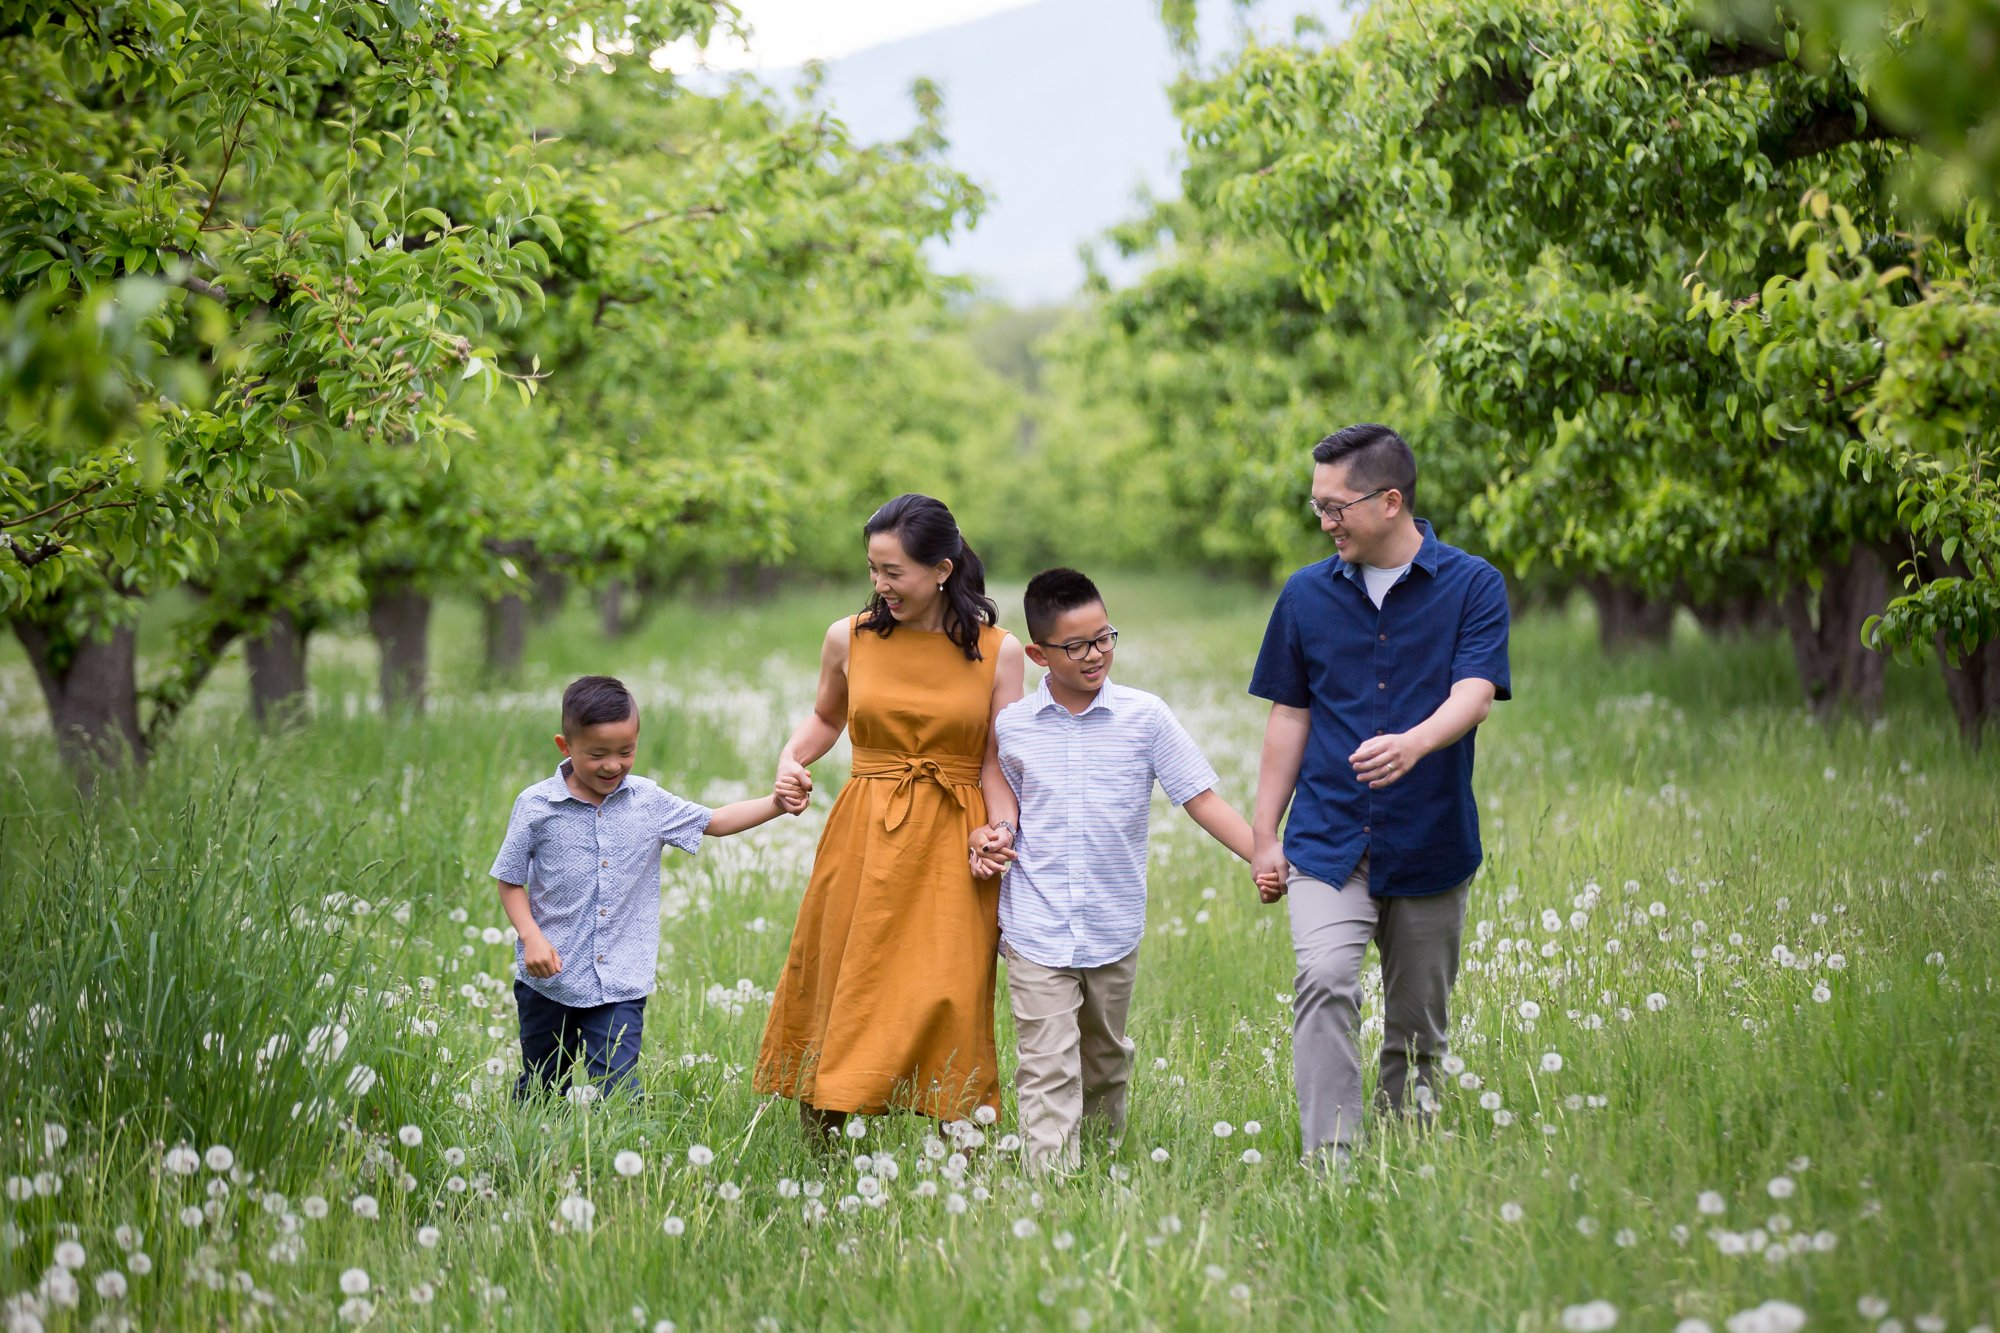 A family walking through an orchard together